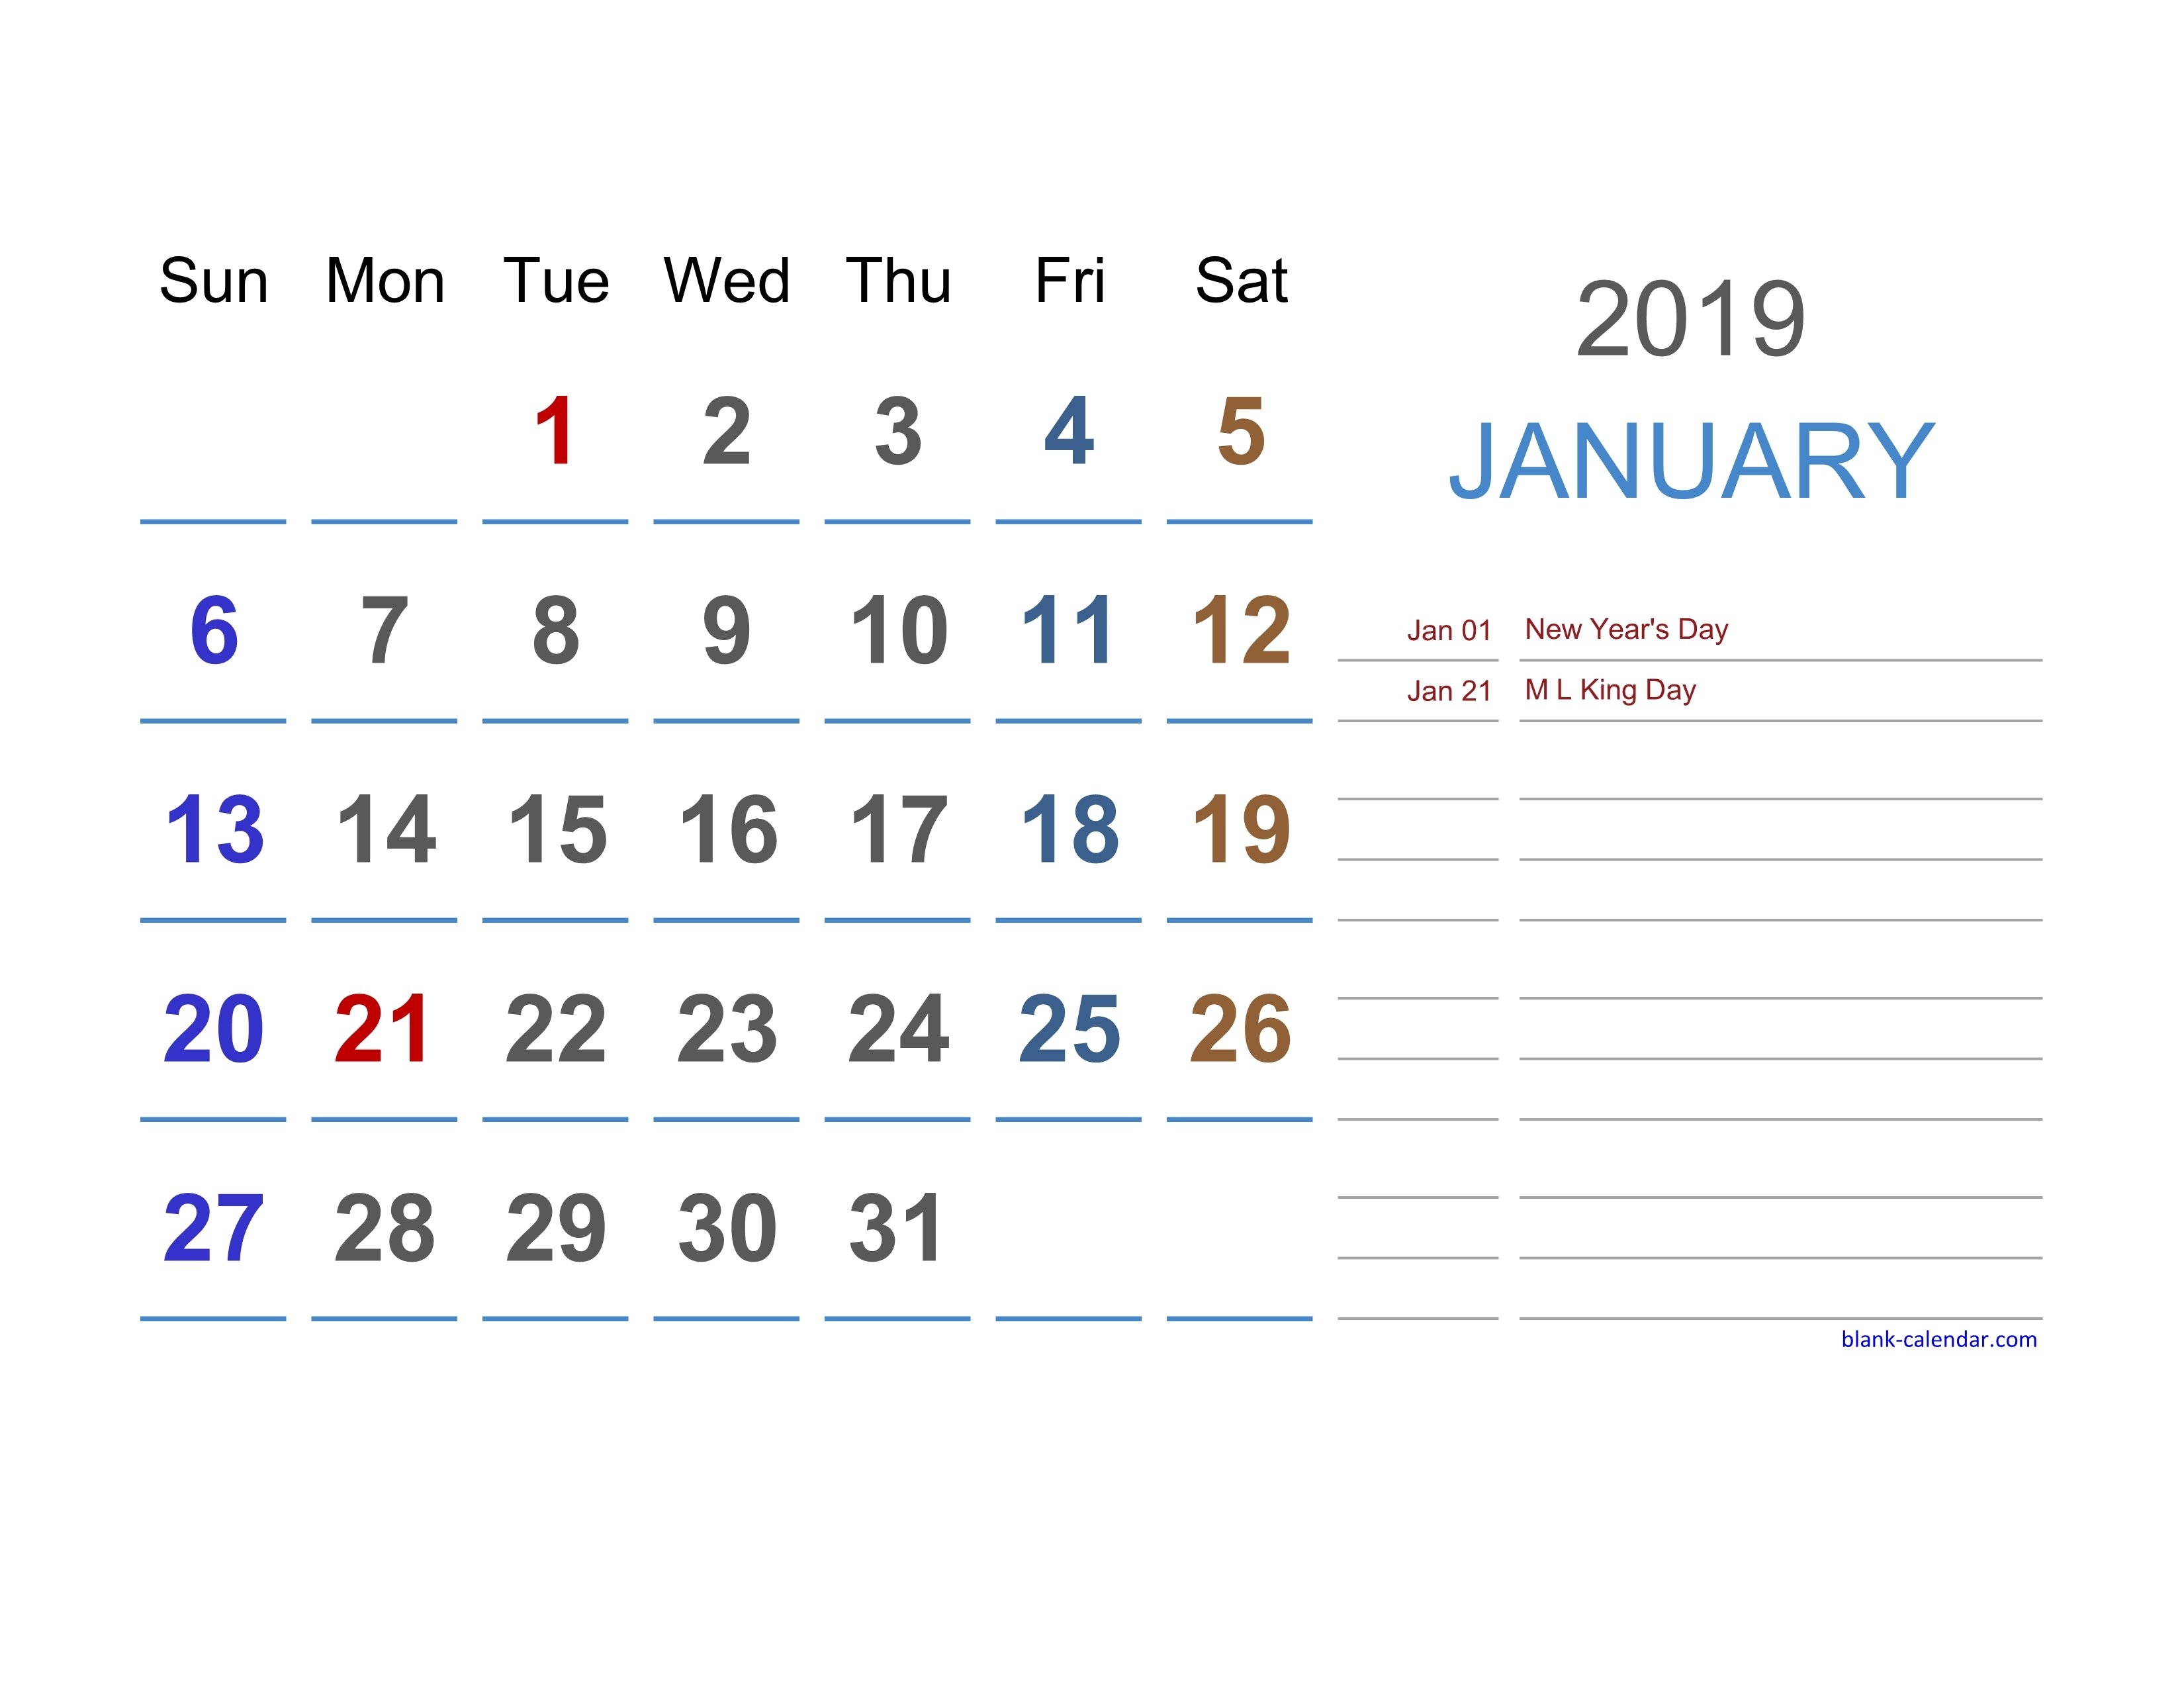 Free Download 2019 Excel Calendar Large Space For Notes (Horizontal) Calendar 2019 Excel Editable